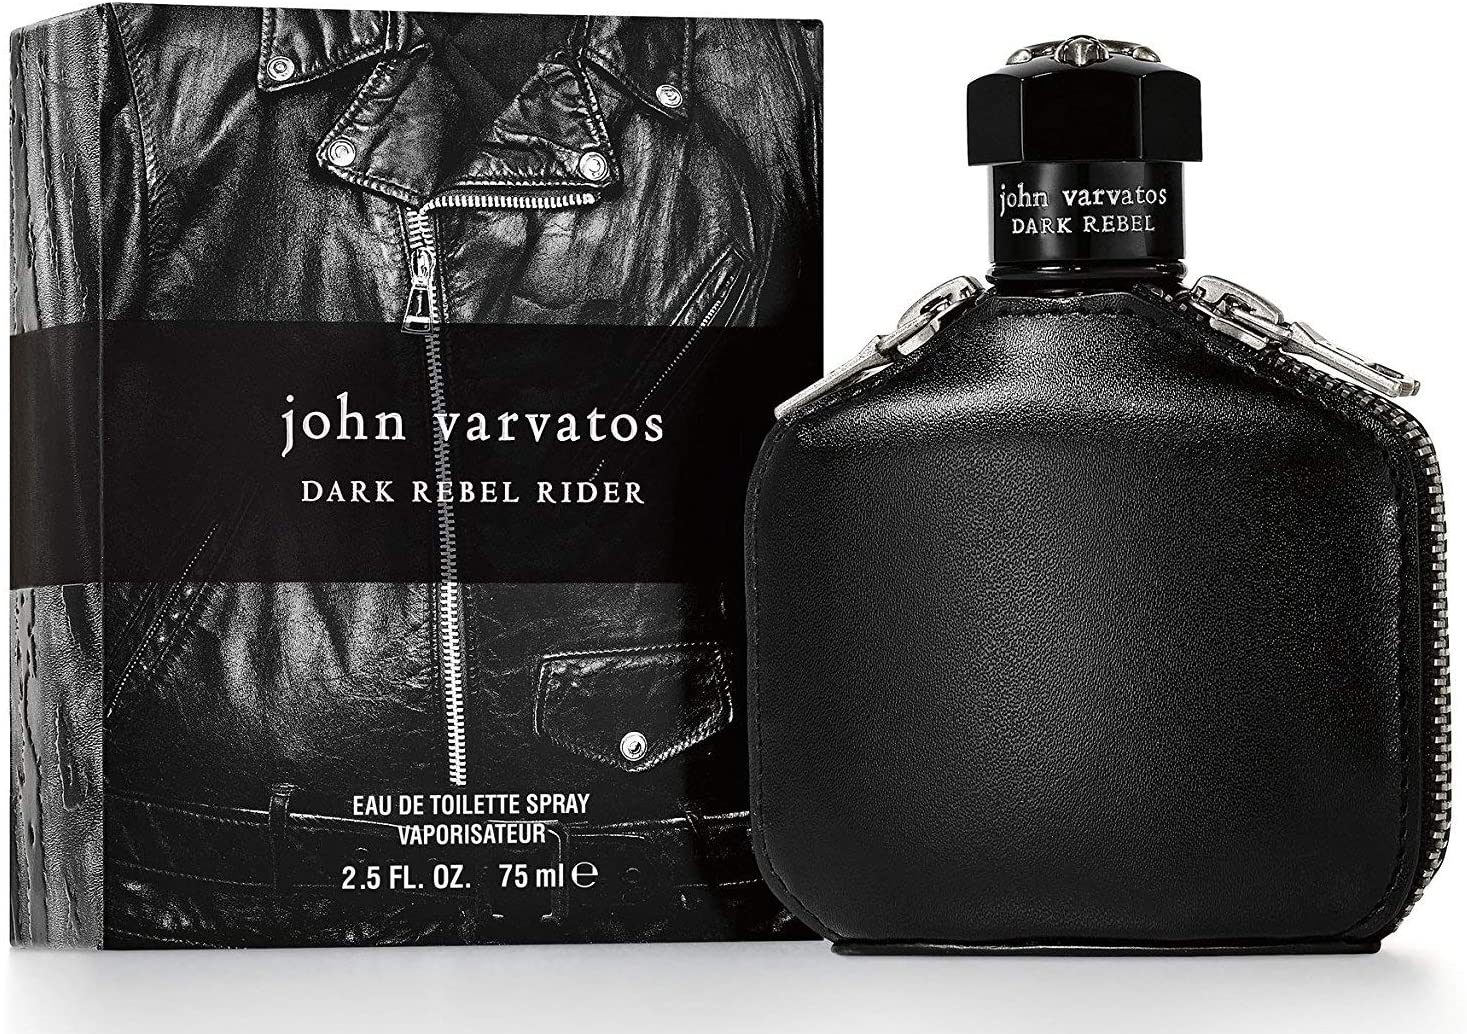 John Varvatos Dark Rebel Rider EDT